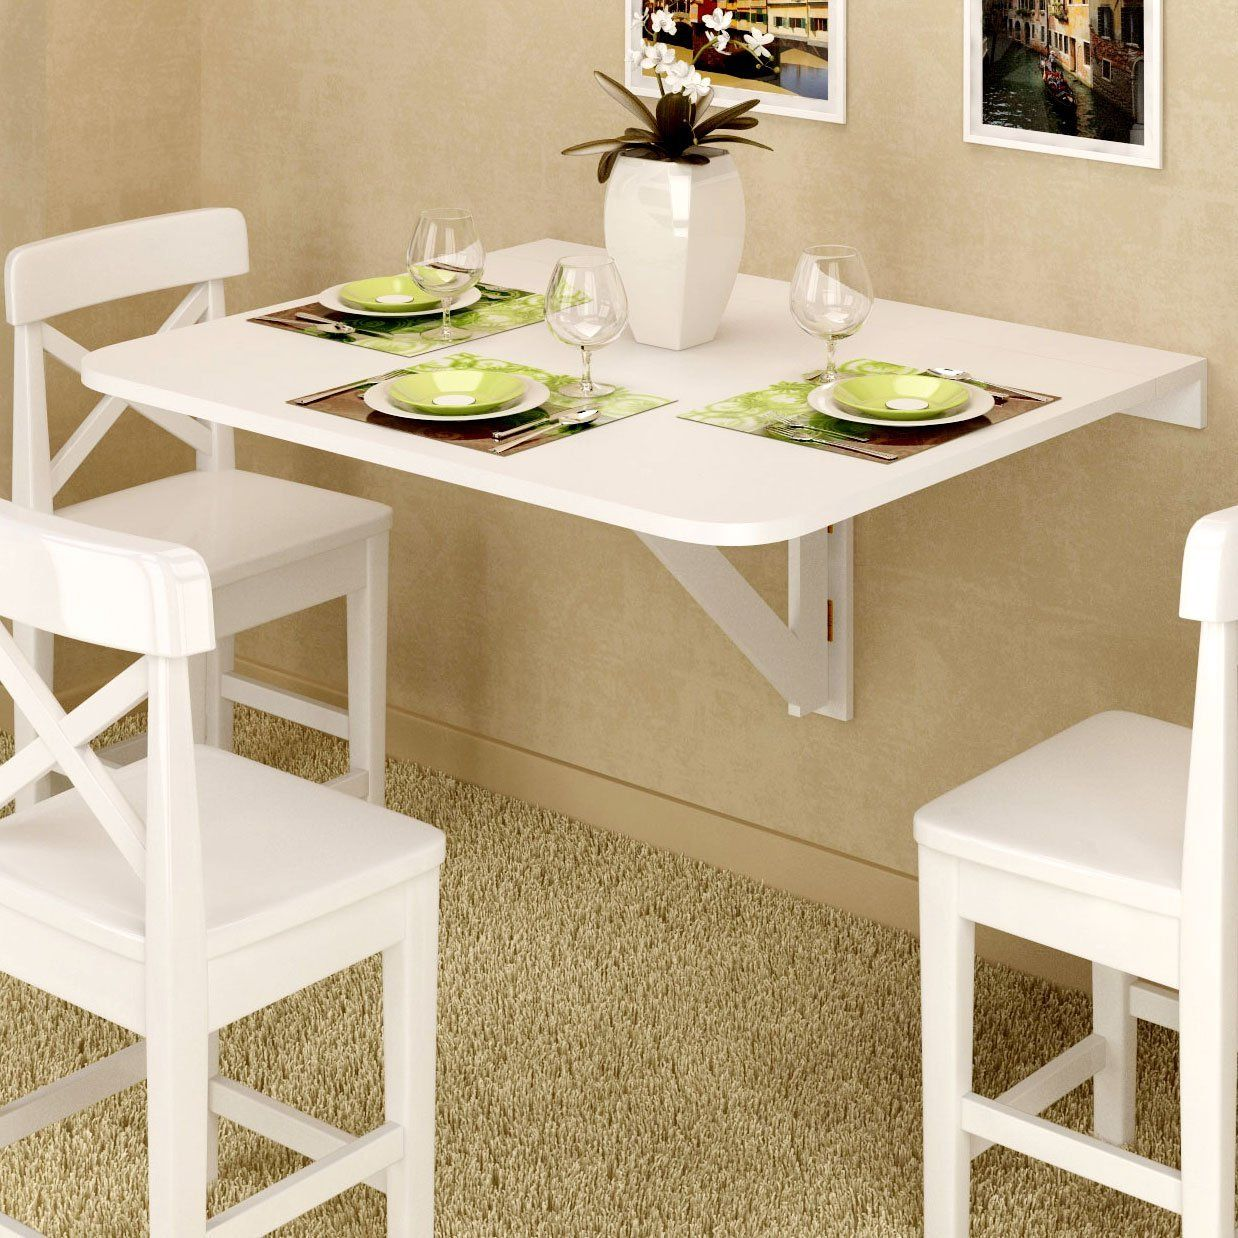 14 Space Saving Small Kitchen Table Sets 2019: Amazon.com: Large Wall Mount Drop Leaf Table White Solid